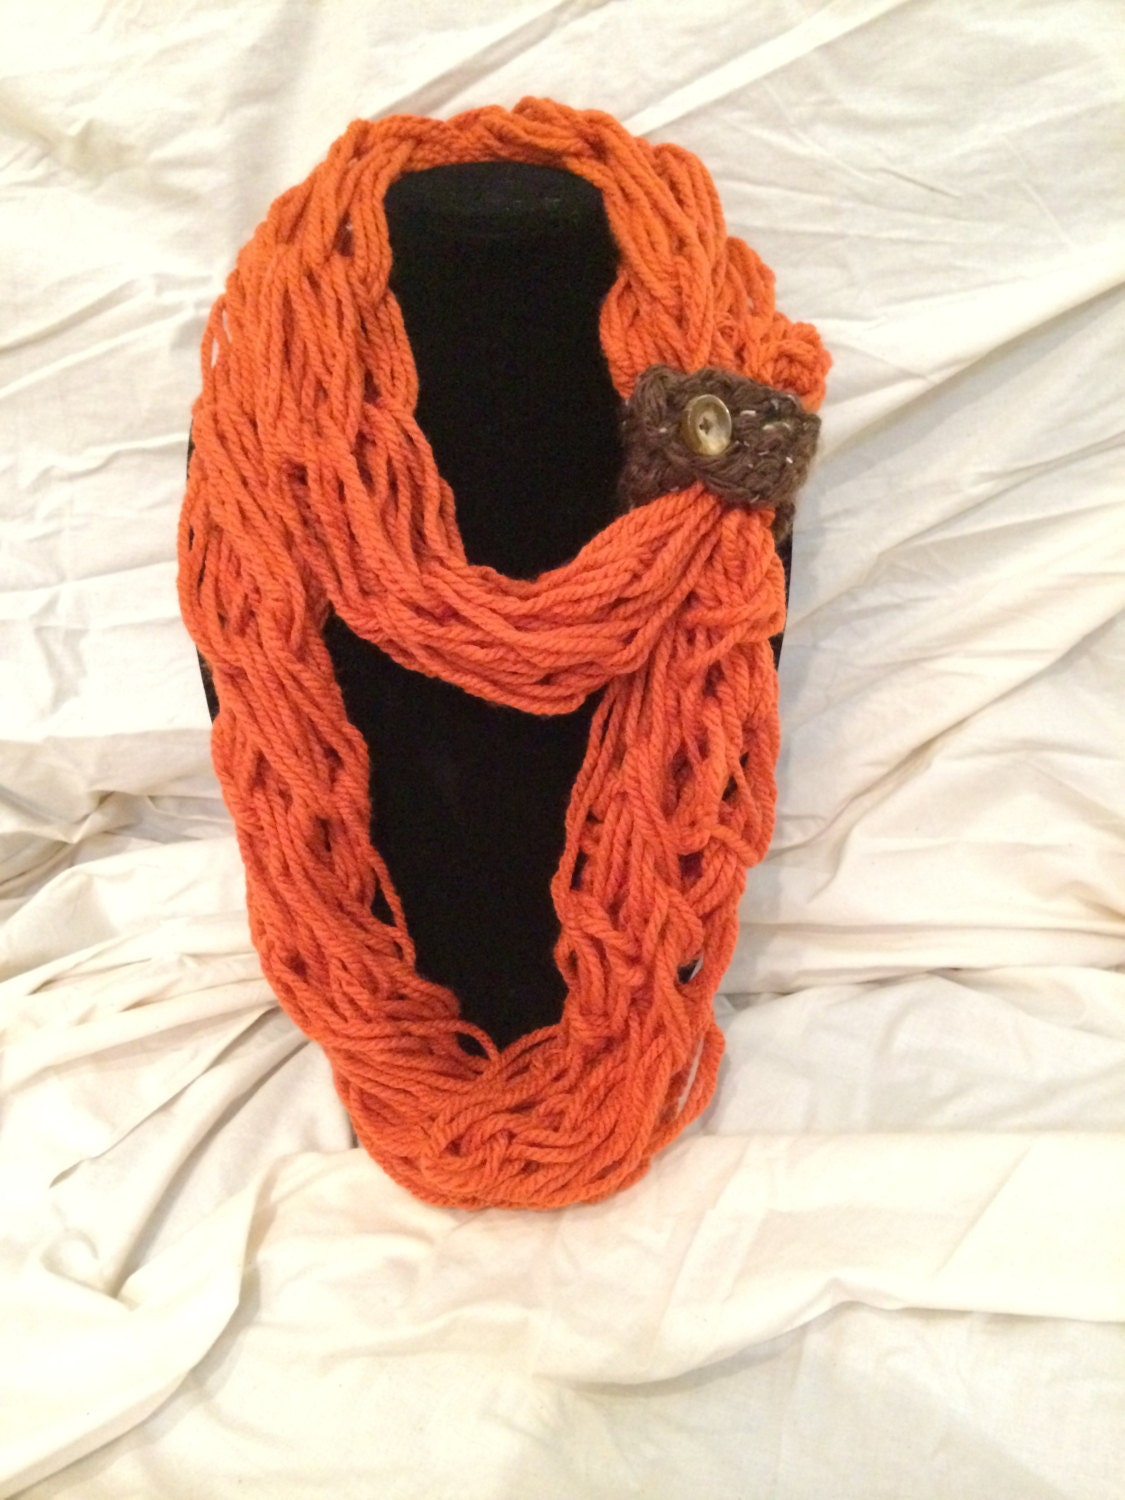 Knitting With Arms Scarf : Orange arm knit scarf by alliescraft on etsy